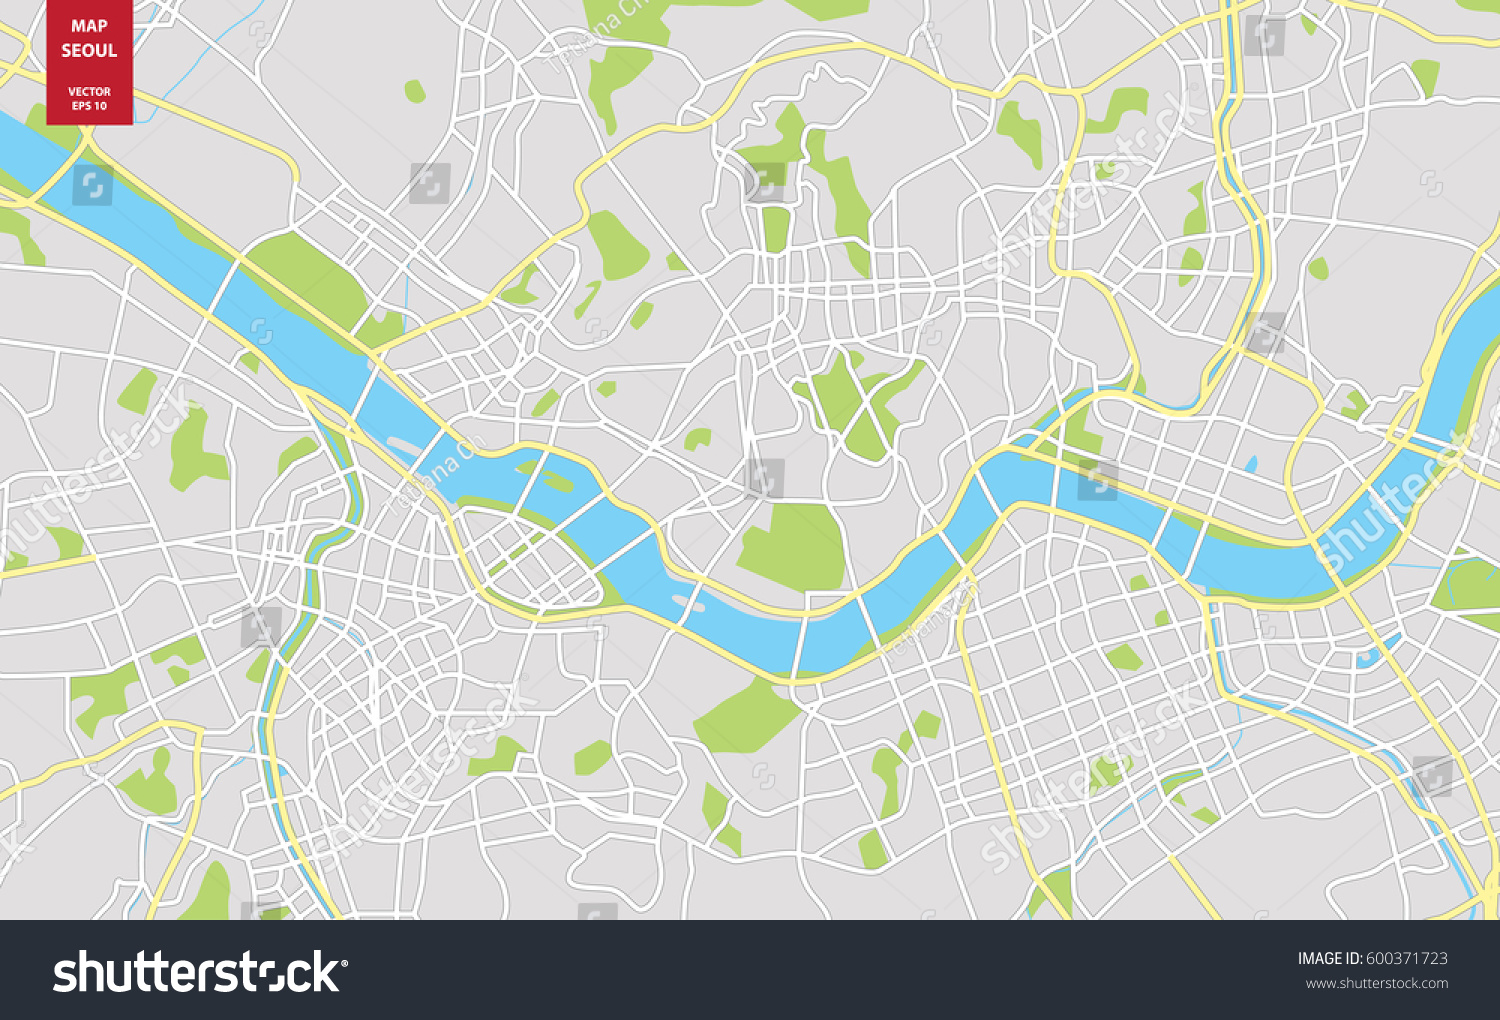 Vector color map seoul south korea stock vector 600371723 shutterstock vector color map of seoul south korea city plan of seoul vector illustration gumiabroncs Image collections